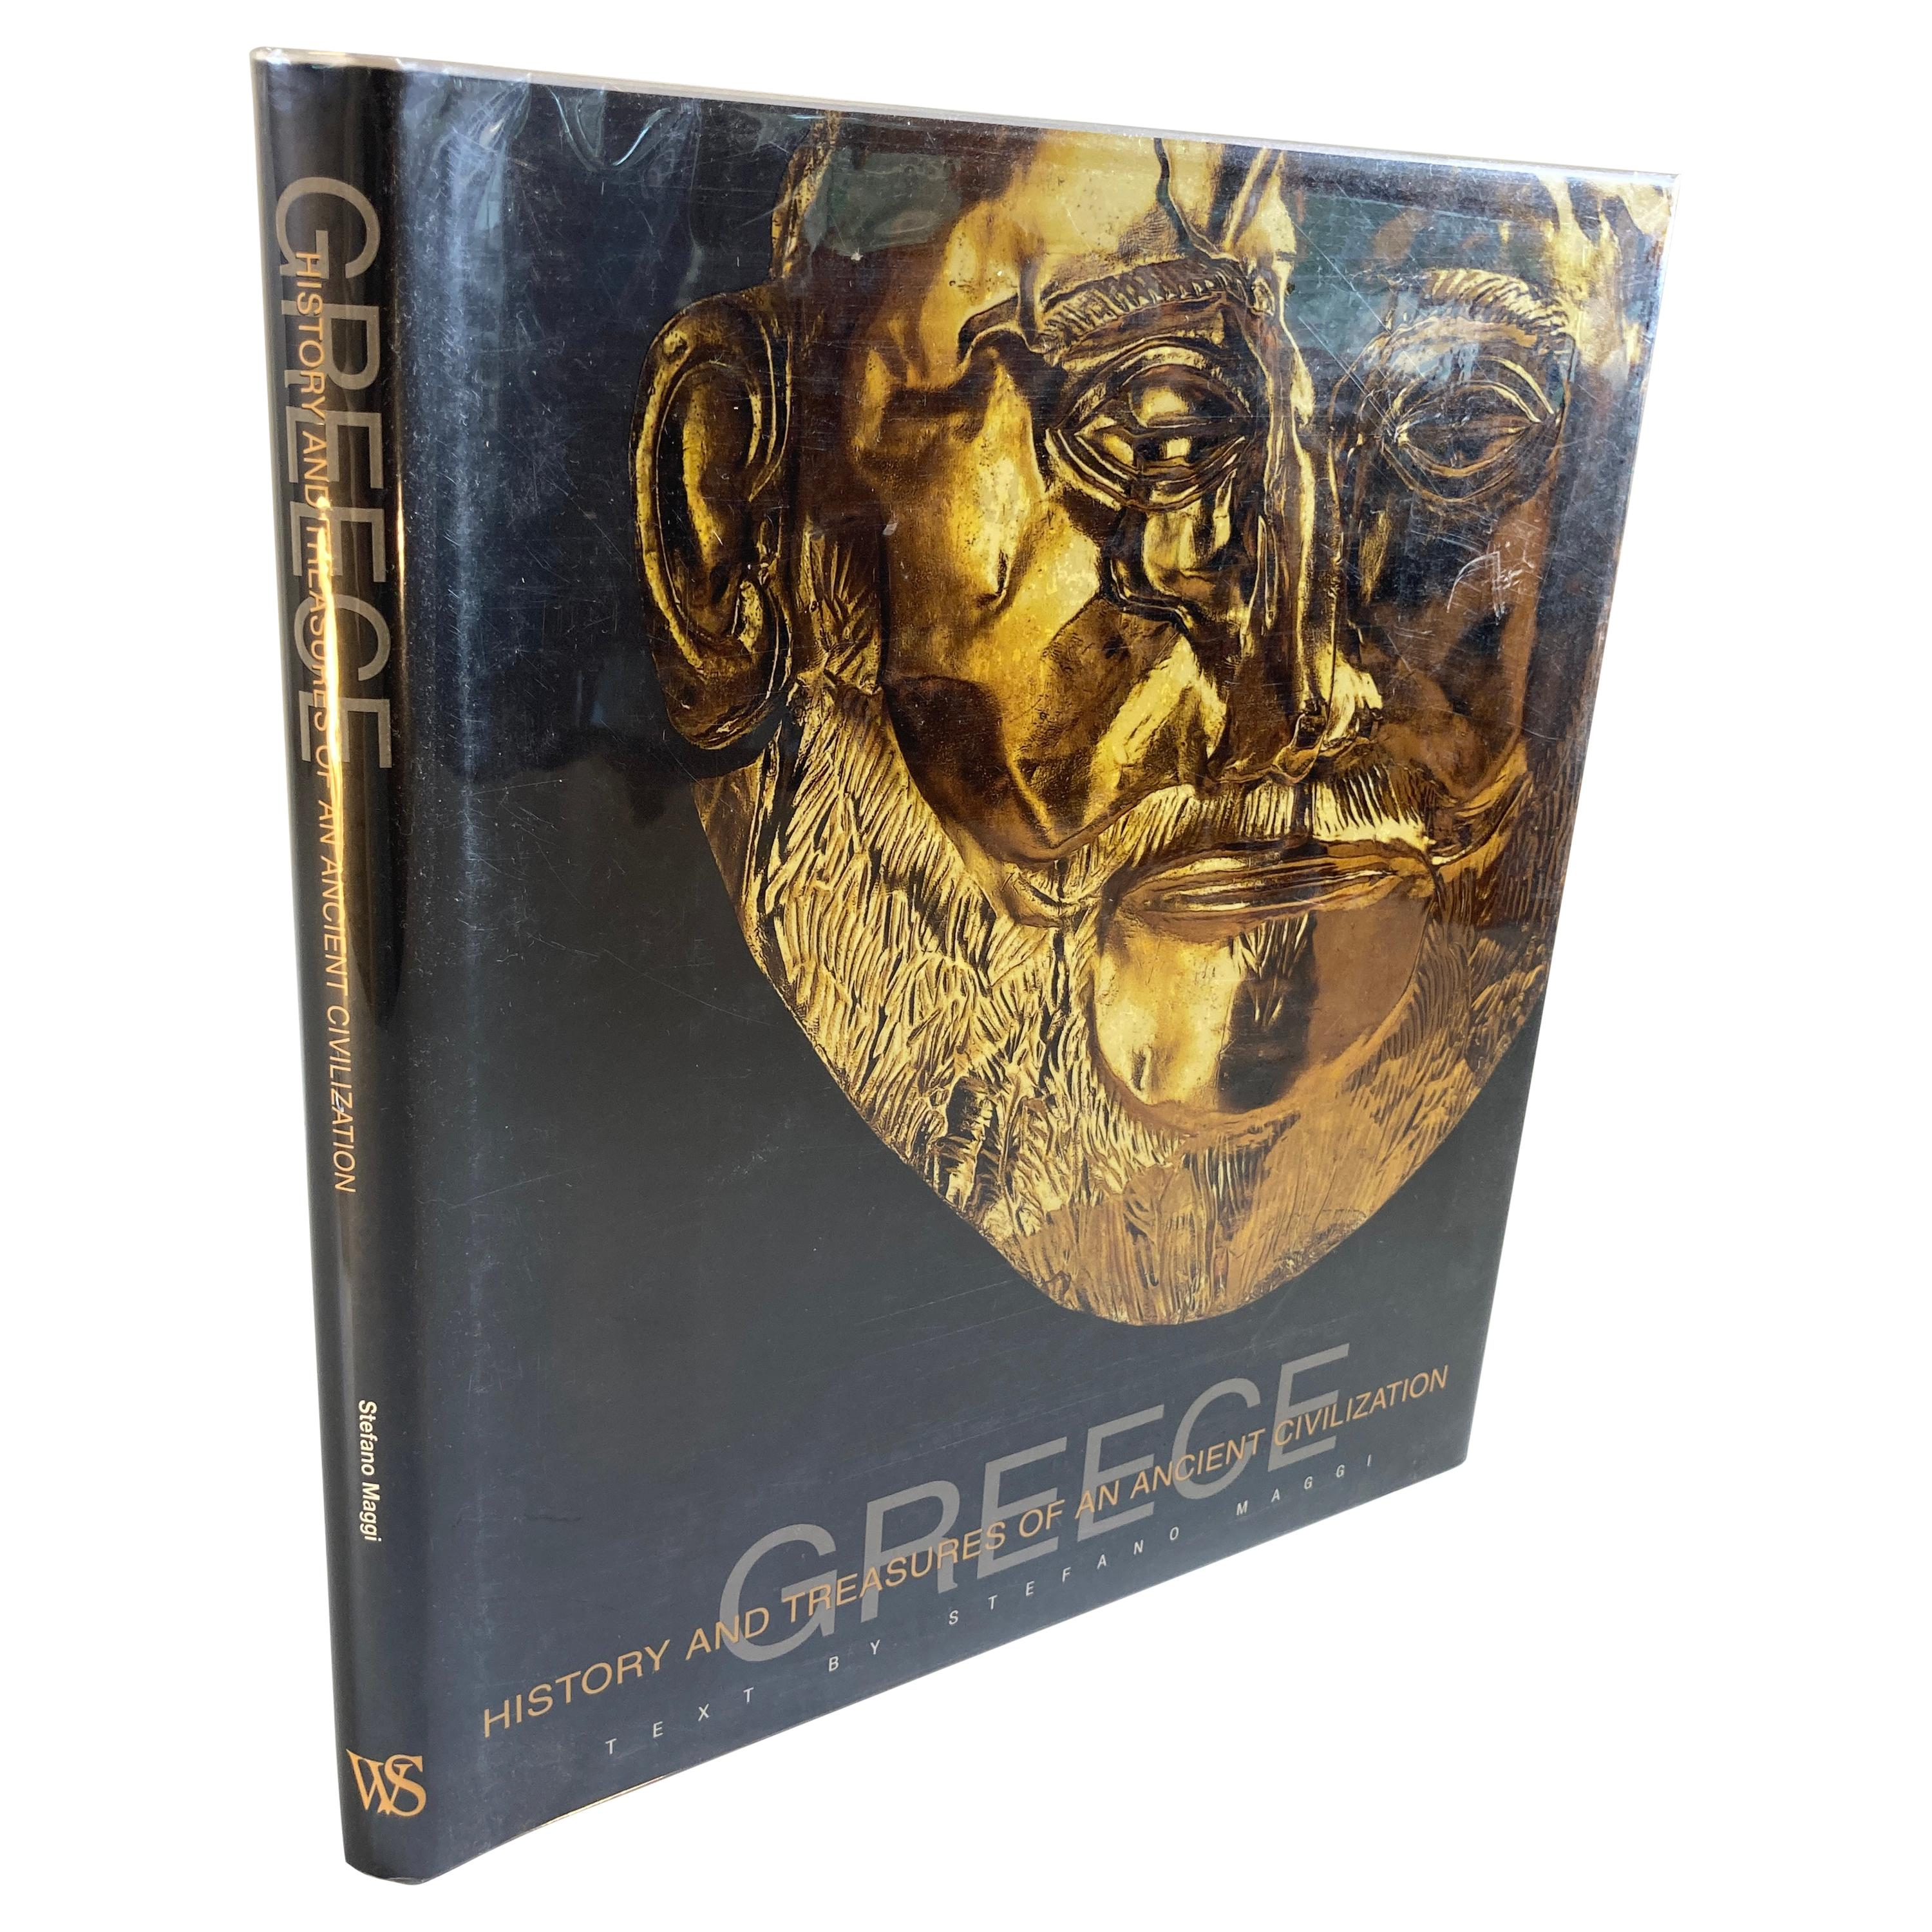 Greece History and Treasures of an Ancient Civilization Hardcover Book